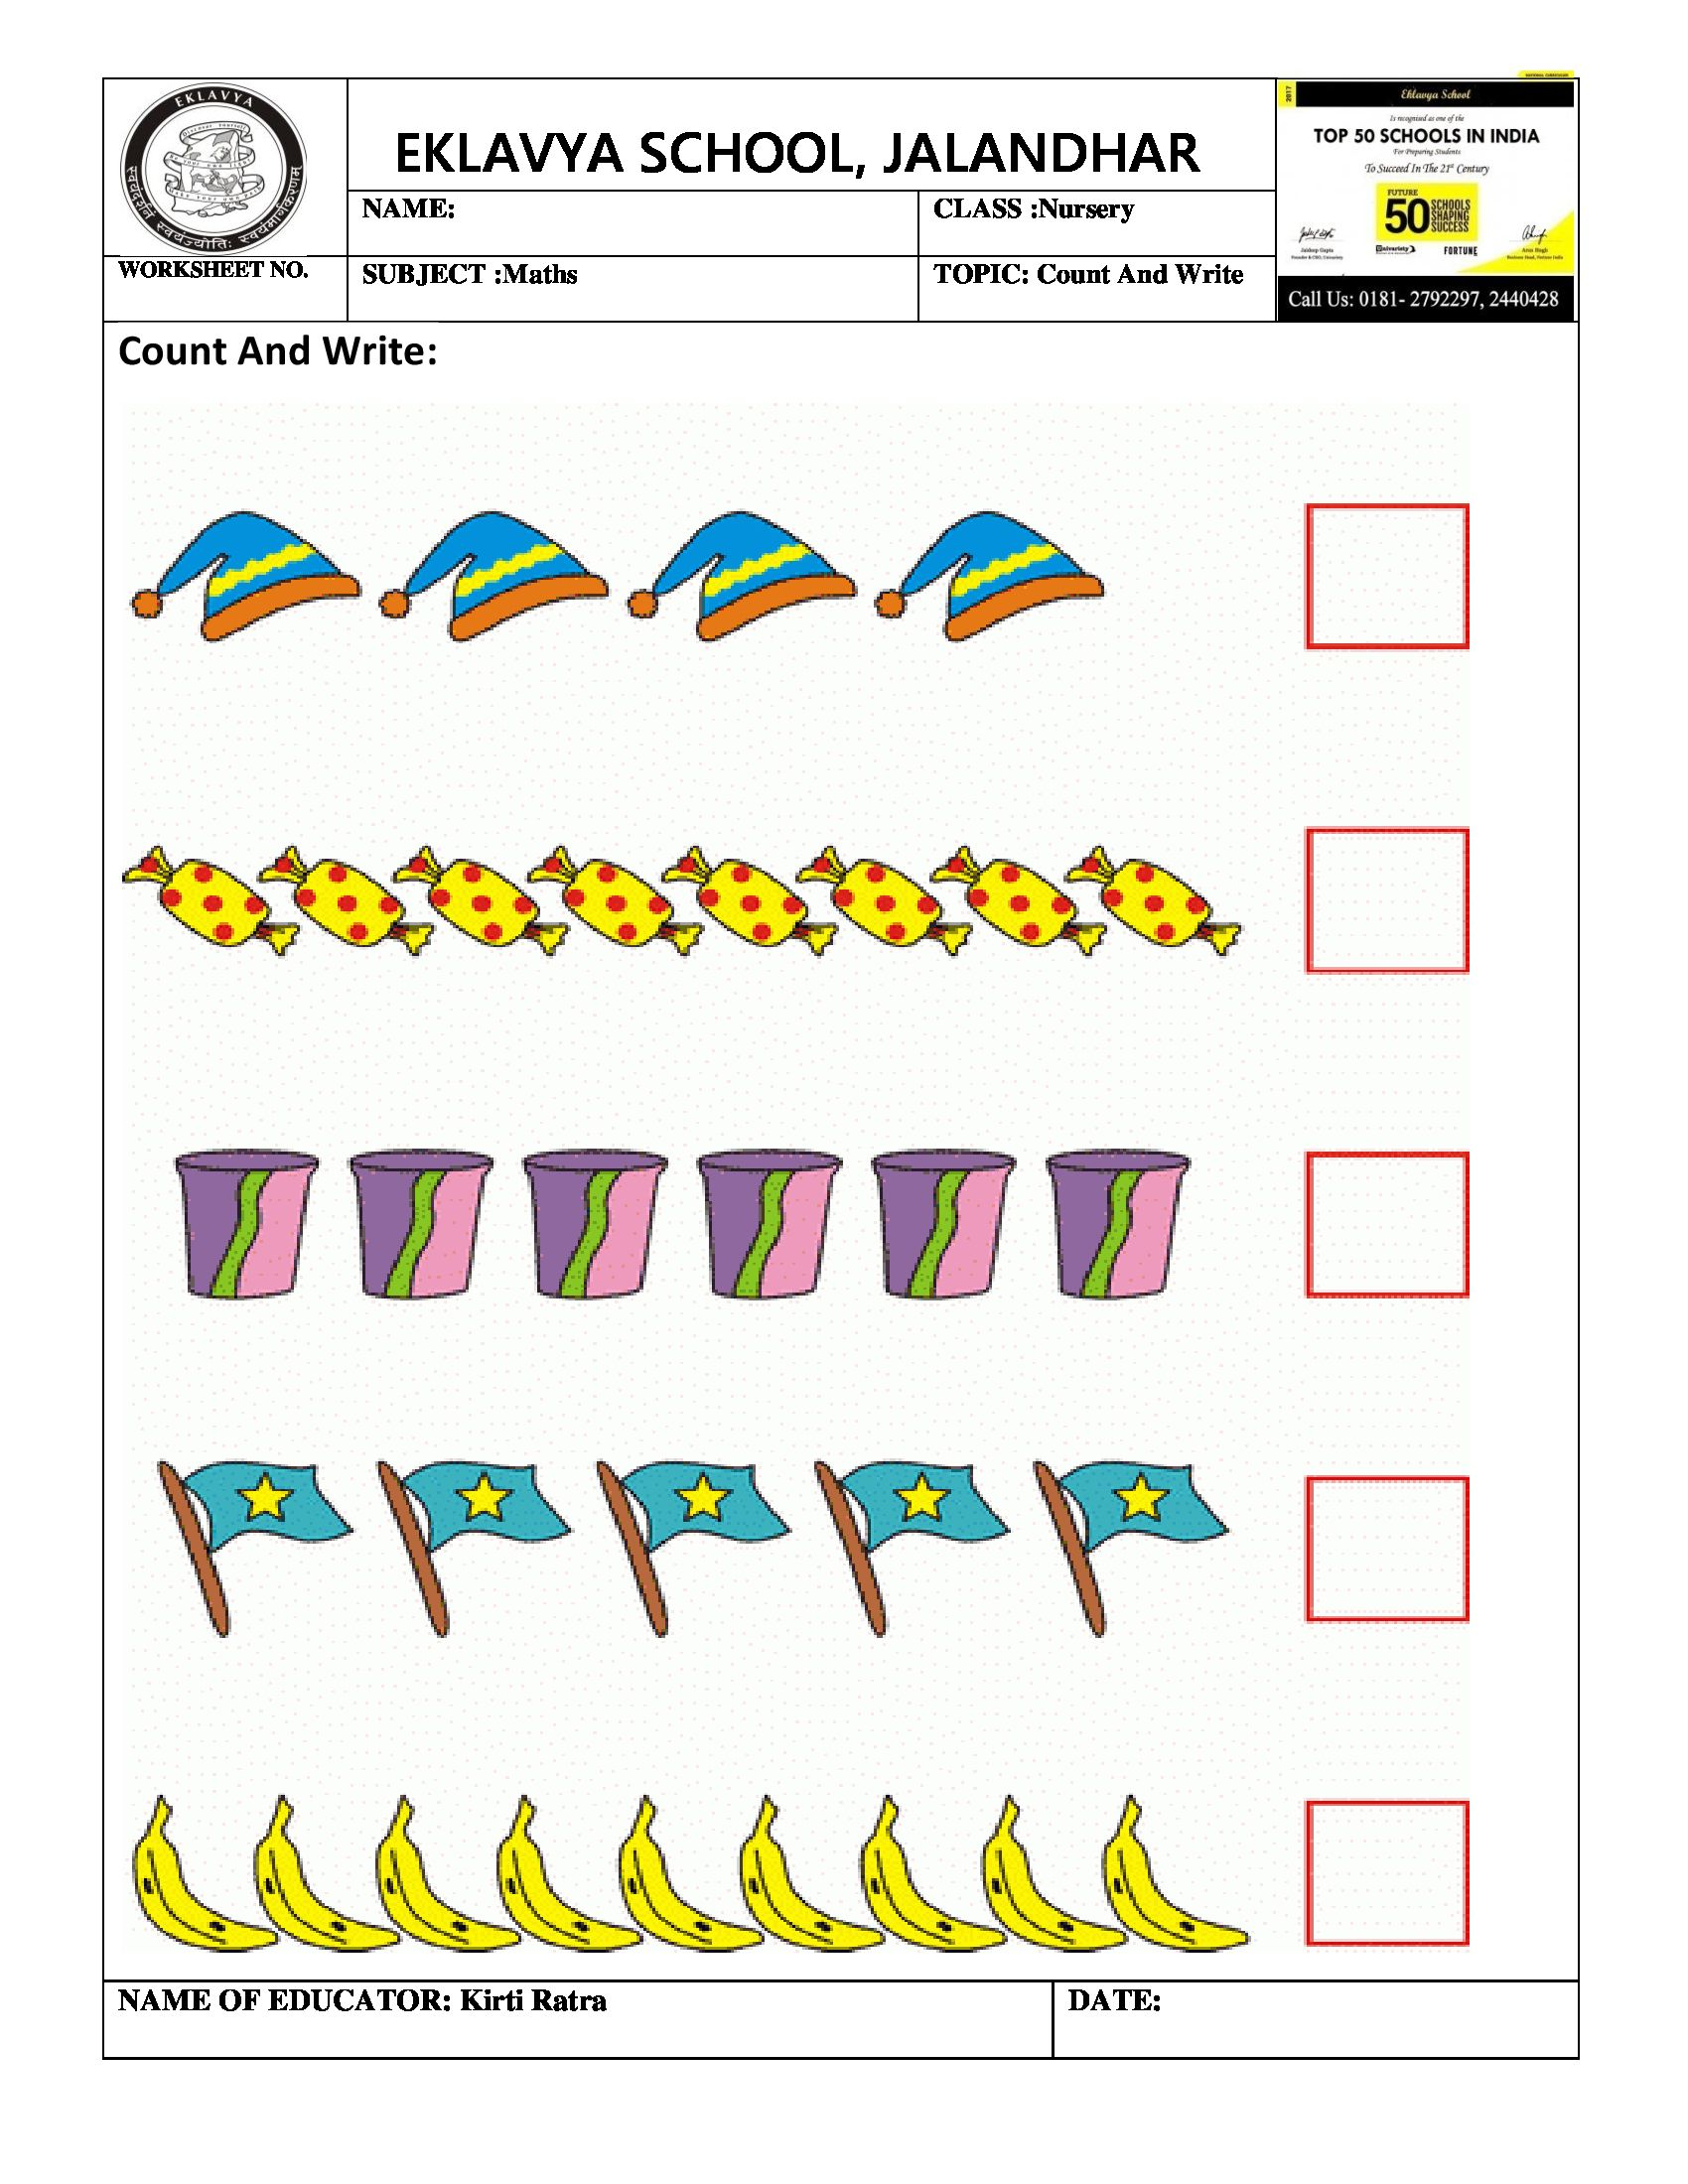 Worksheet Count And Write